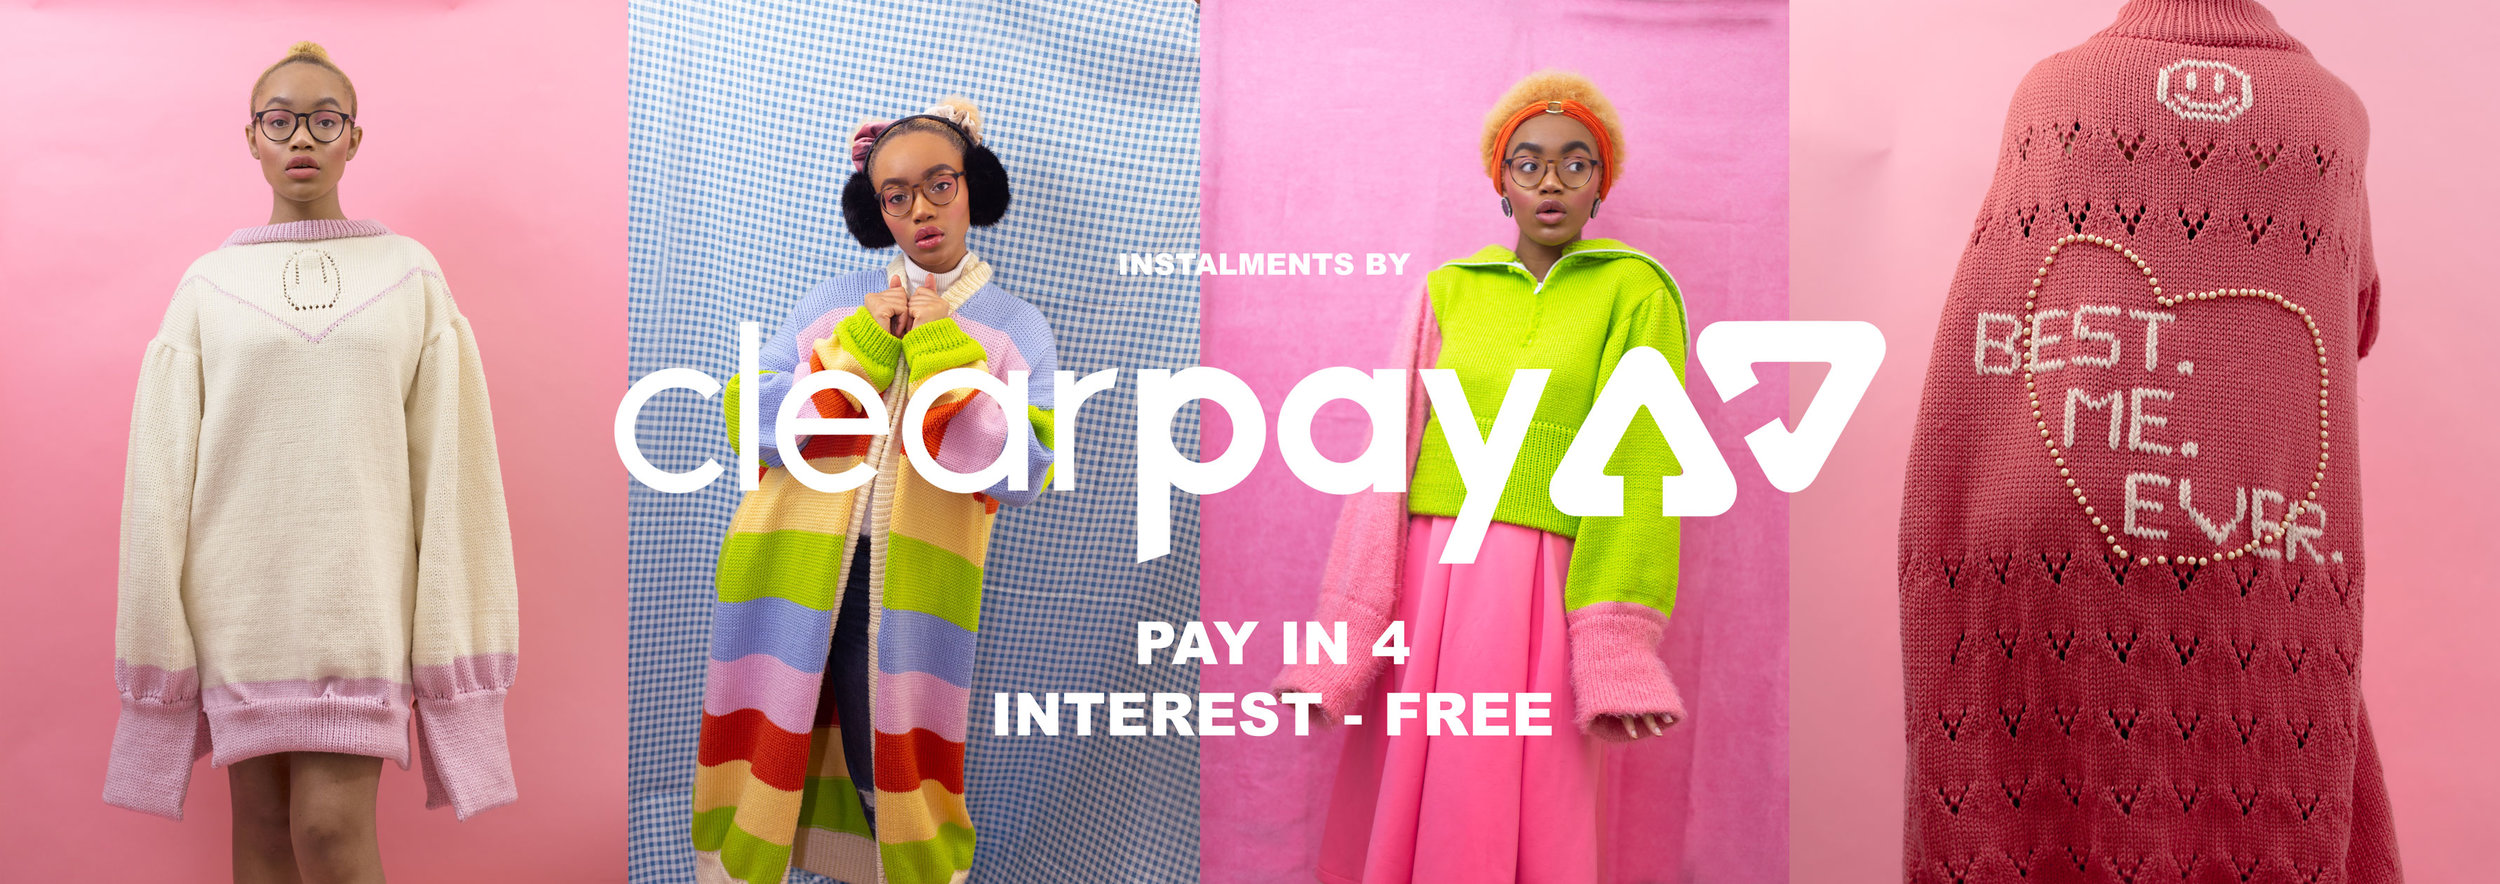 clearpay---page--banner.jpg